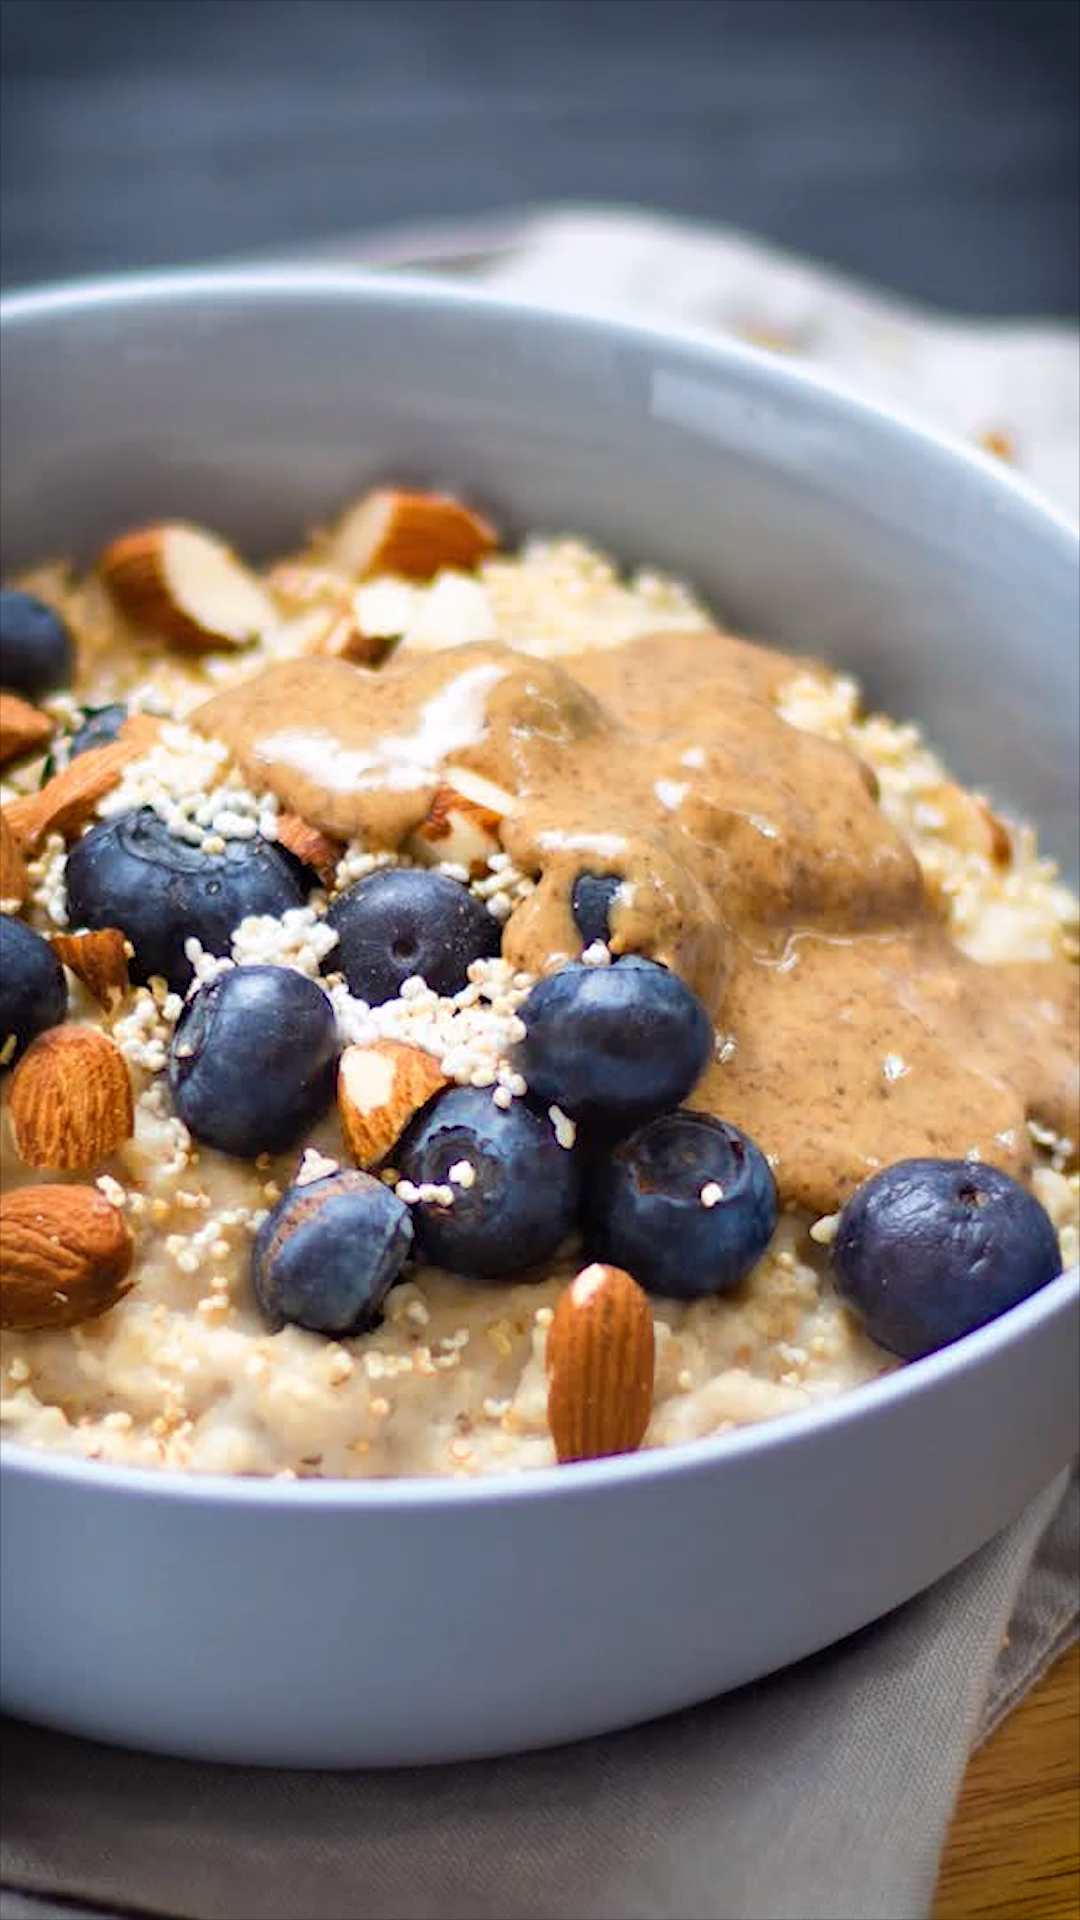 Photo of Clean eating breakfast: almond porridge